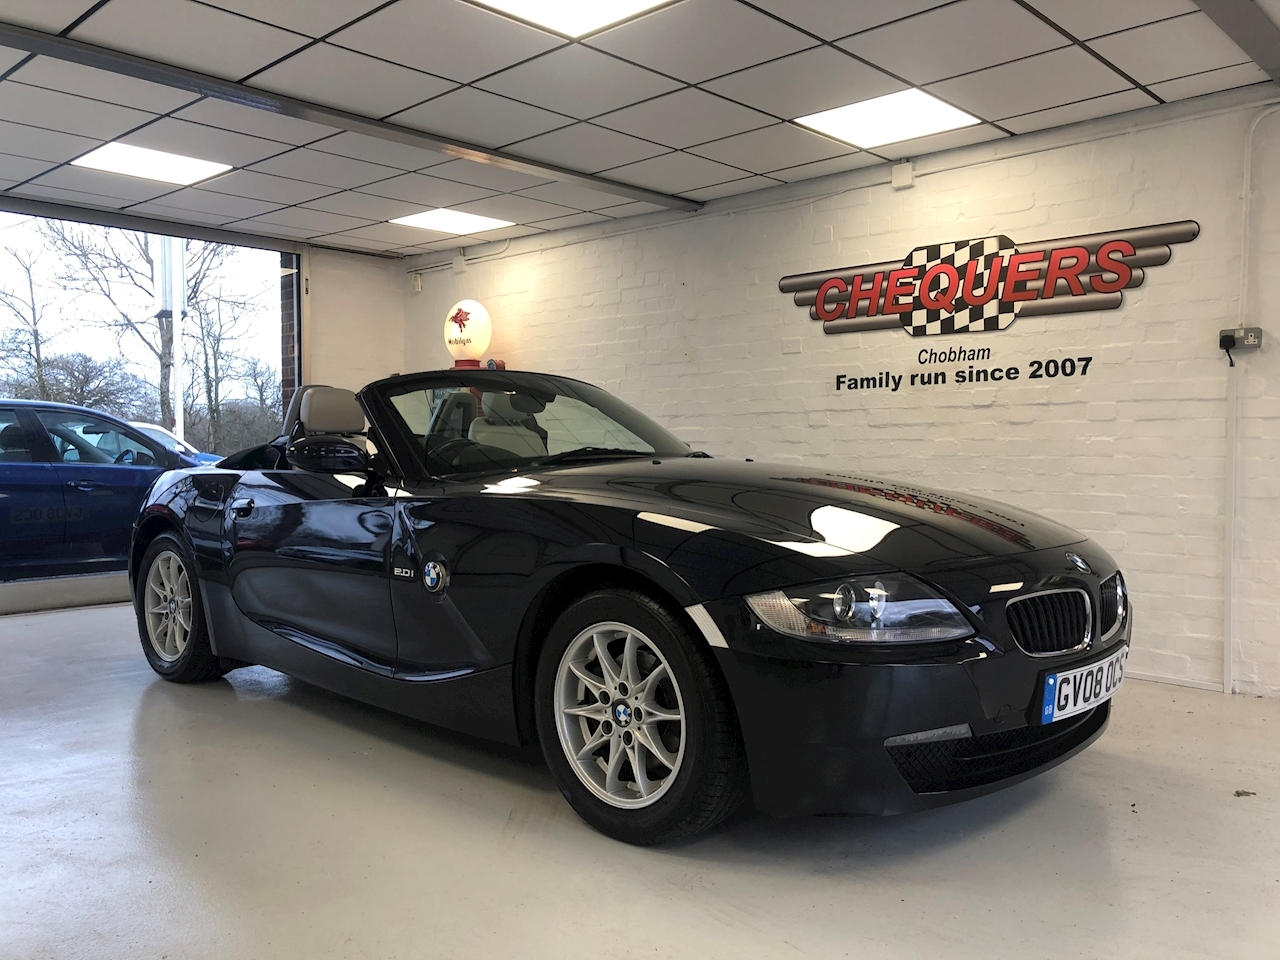 BMW 2.0 i SE Roadster 2dr Petrol Manual (176 g/km, 150 bhp)